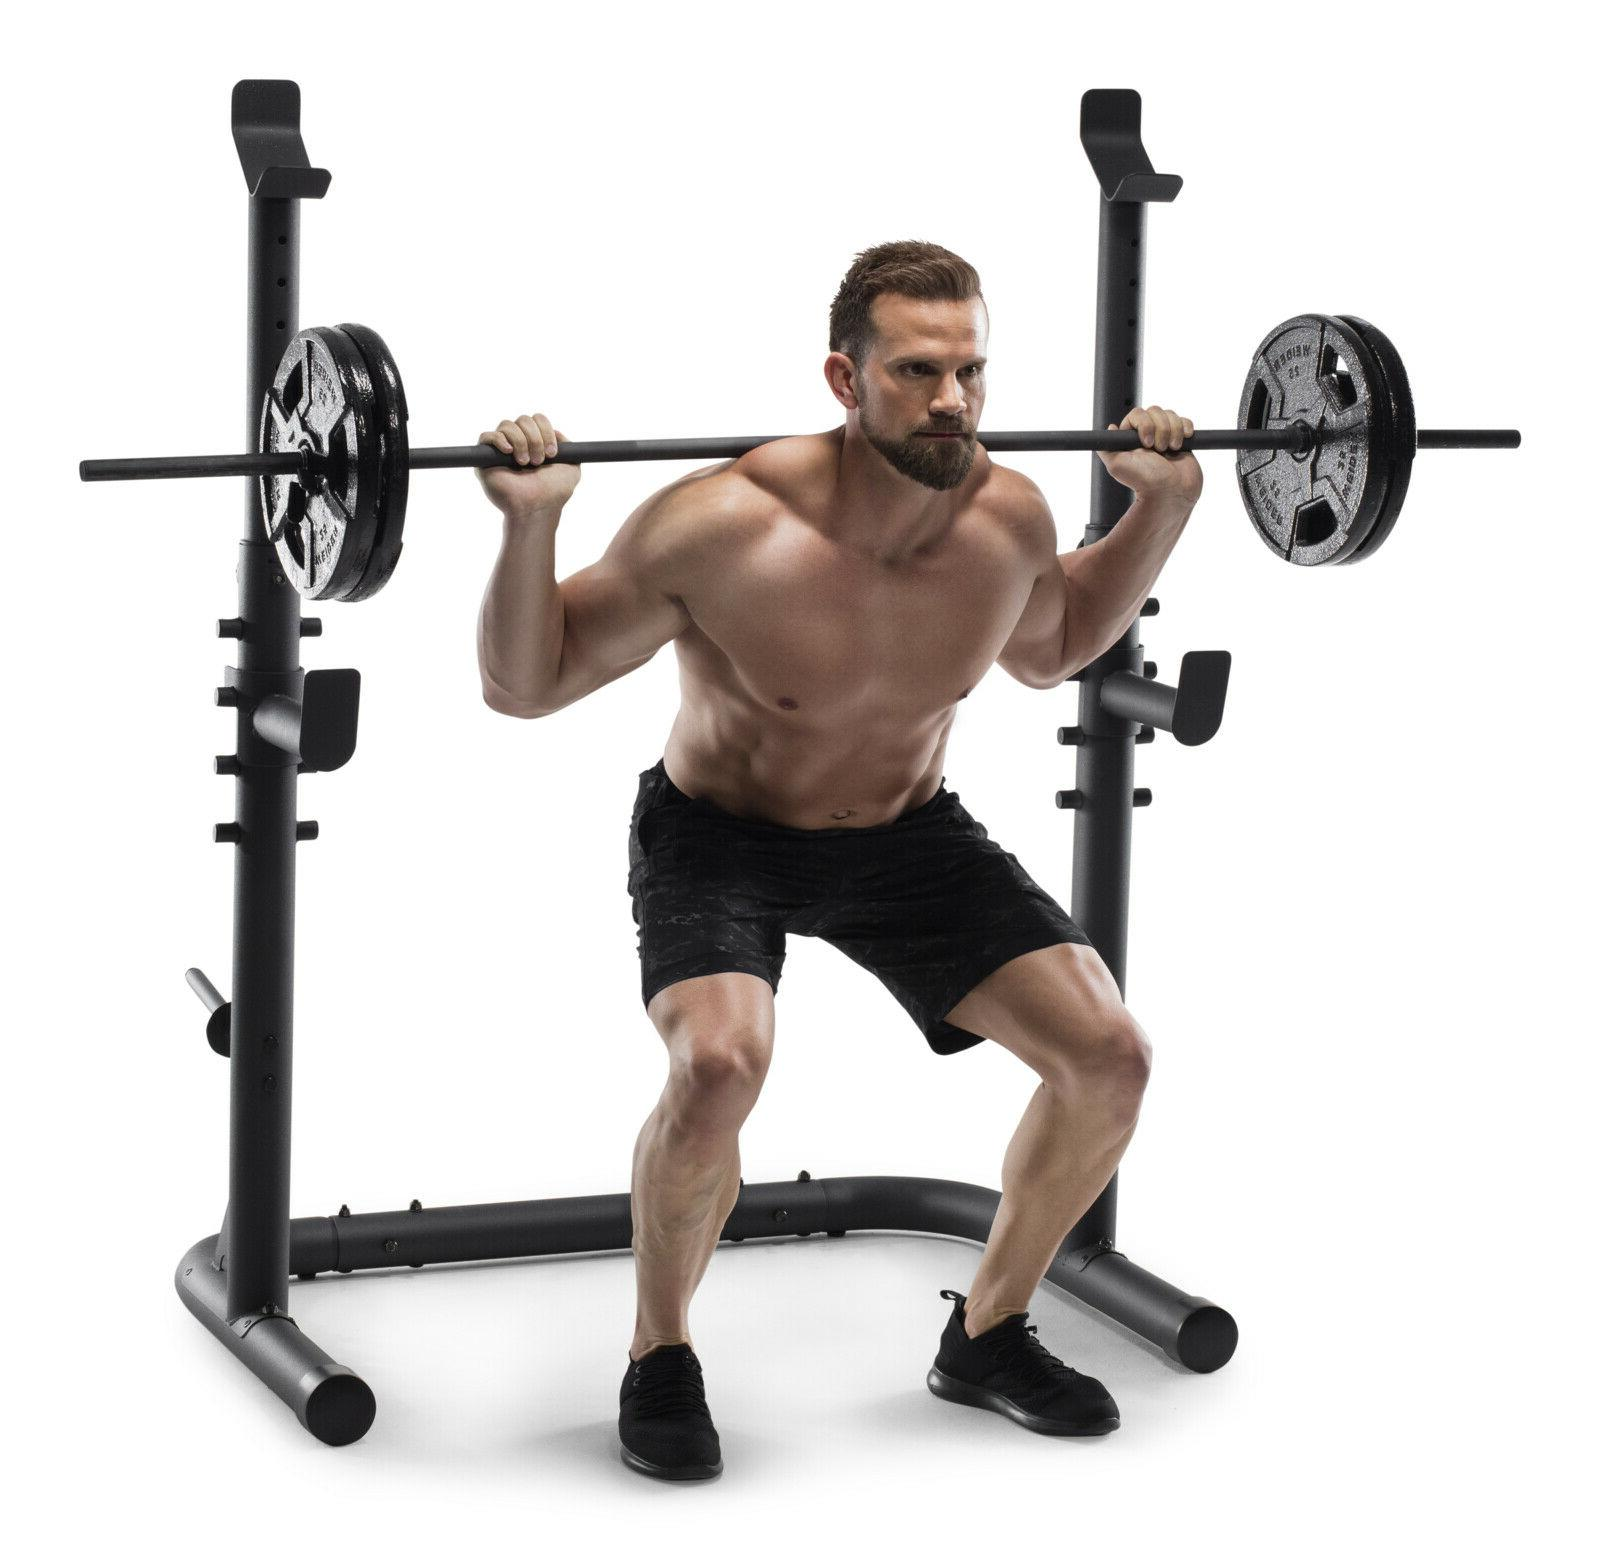 Weider 20 Olympic Workout with Squat Pad